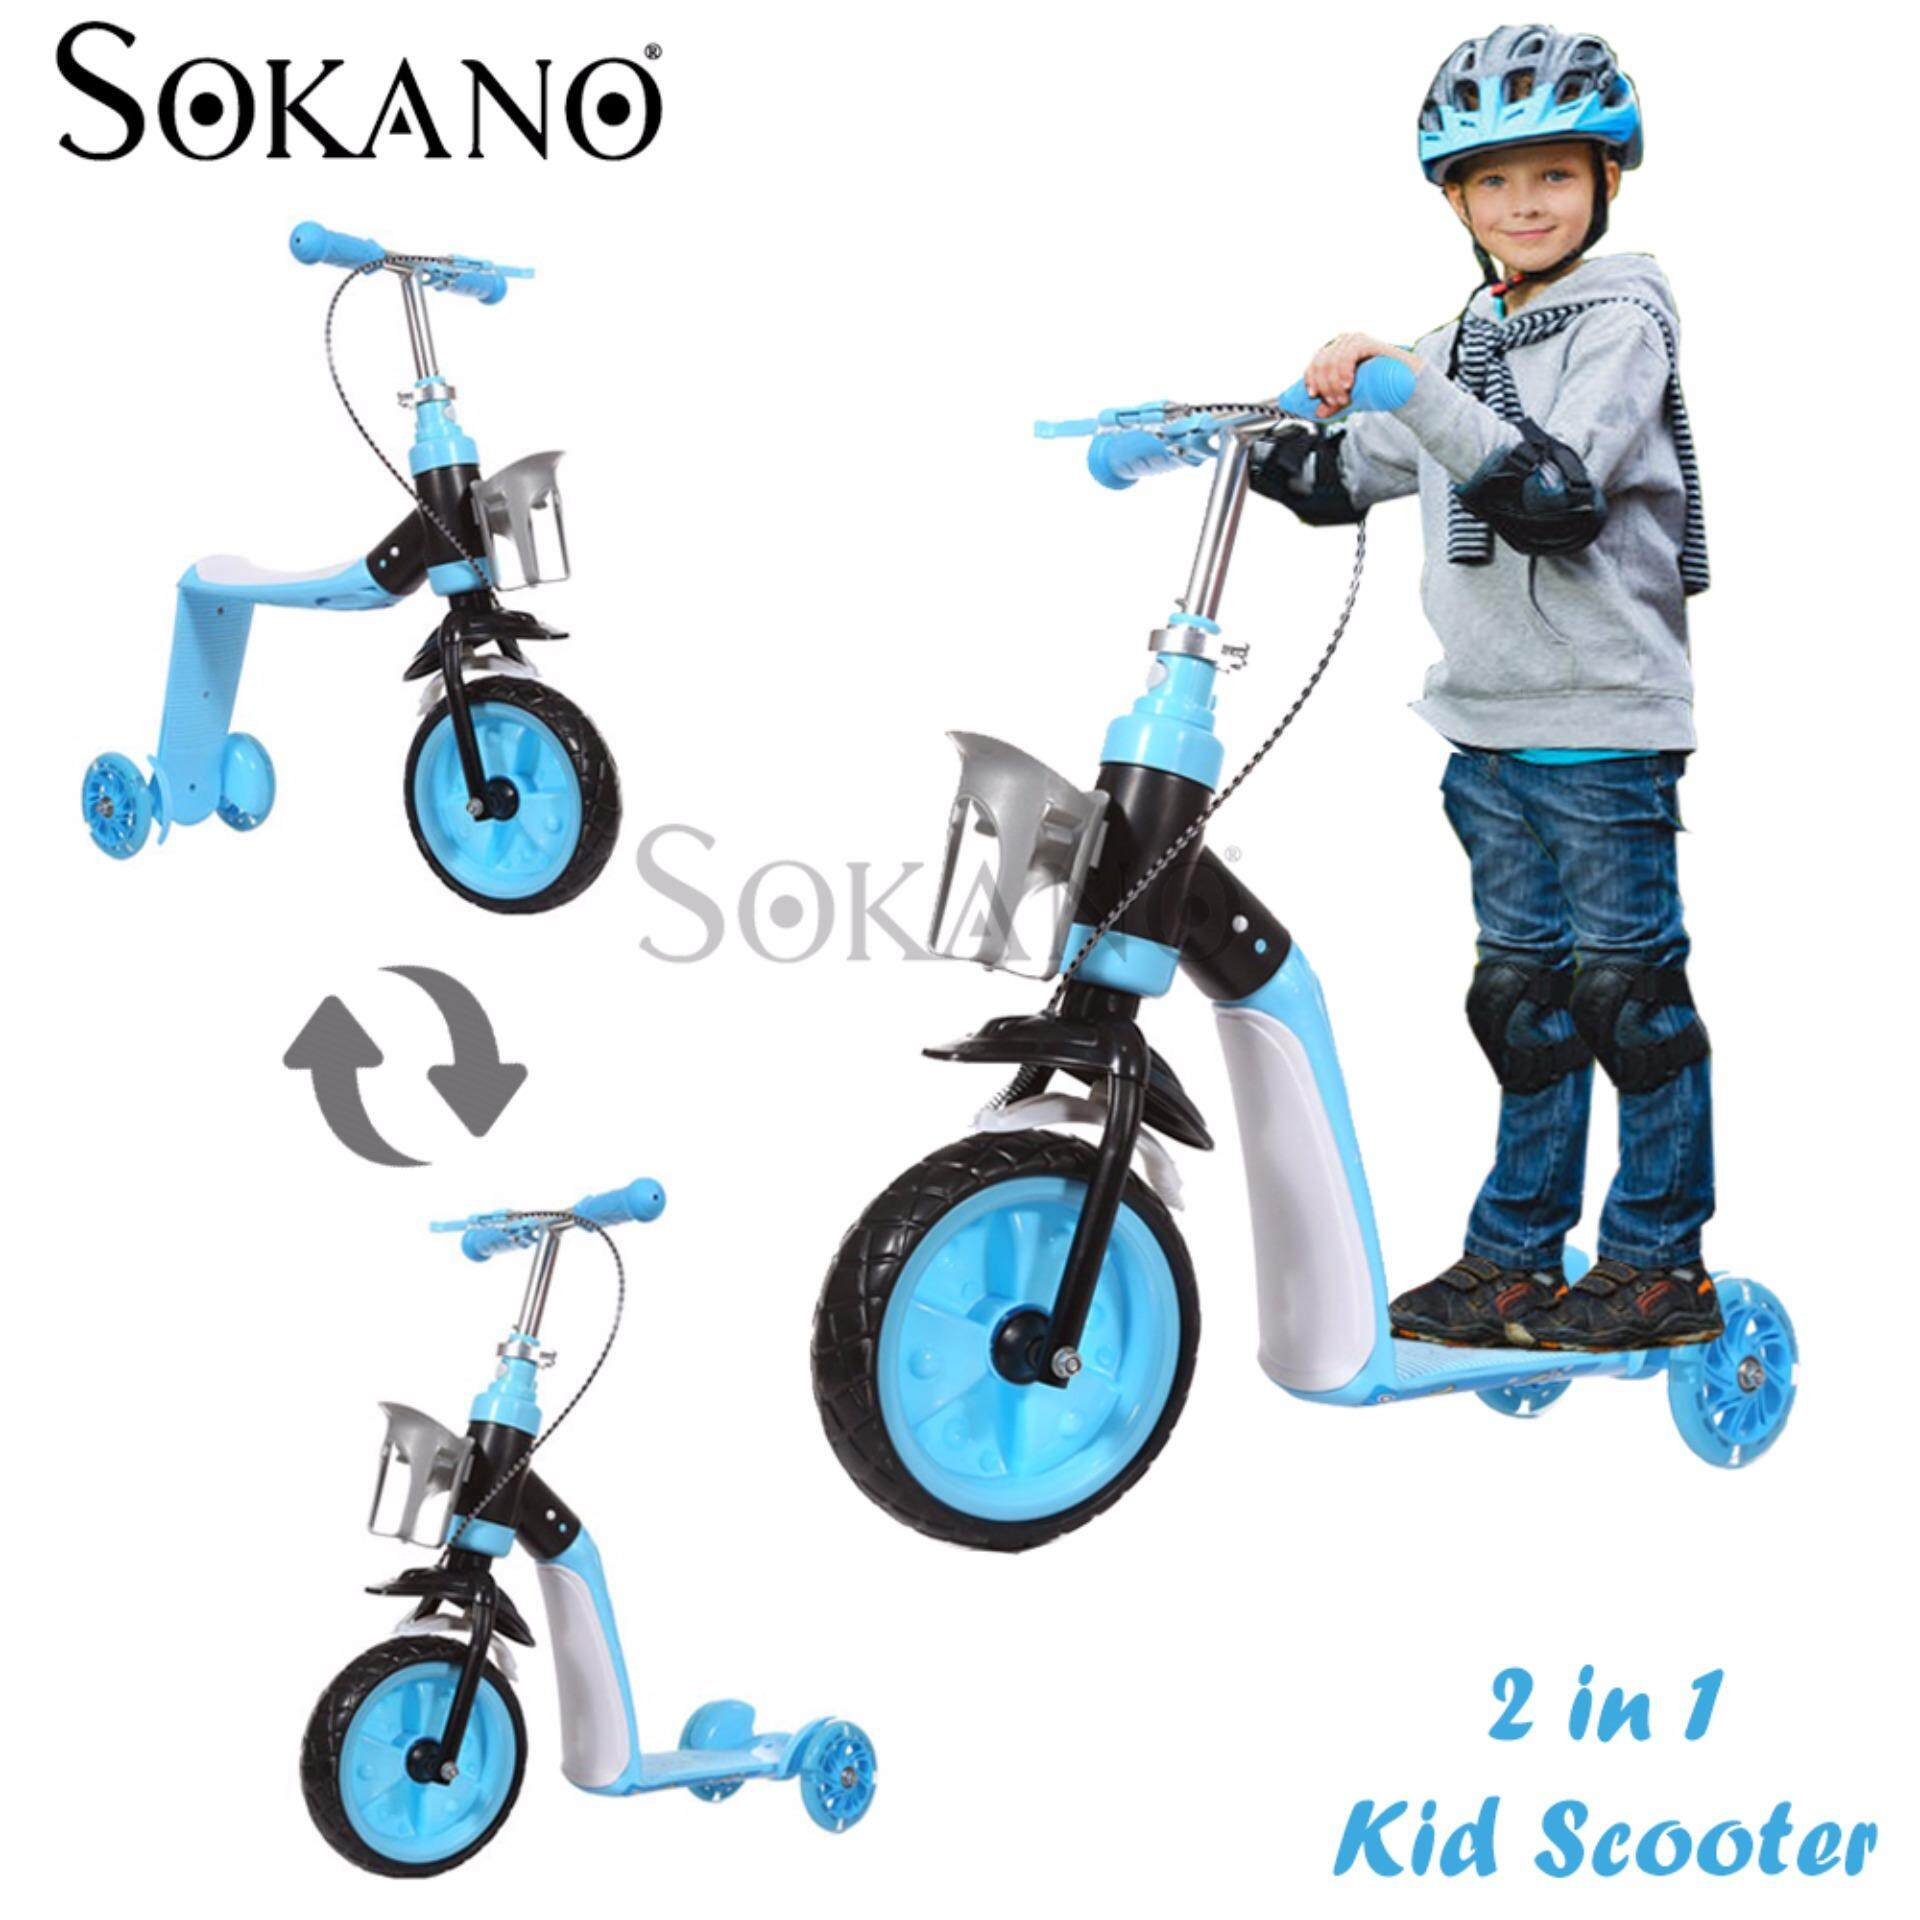 SOKANO 2 in 1 Indoor Or Outdoor Use Kid Scooter With Adjustable Height - Blue